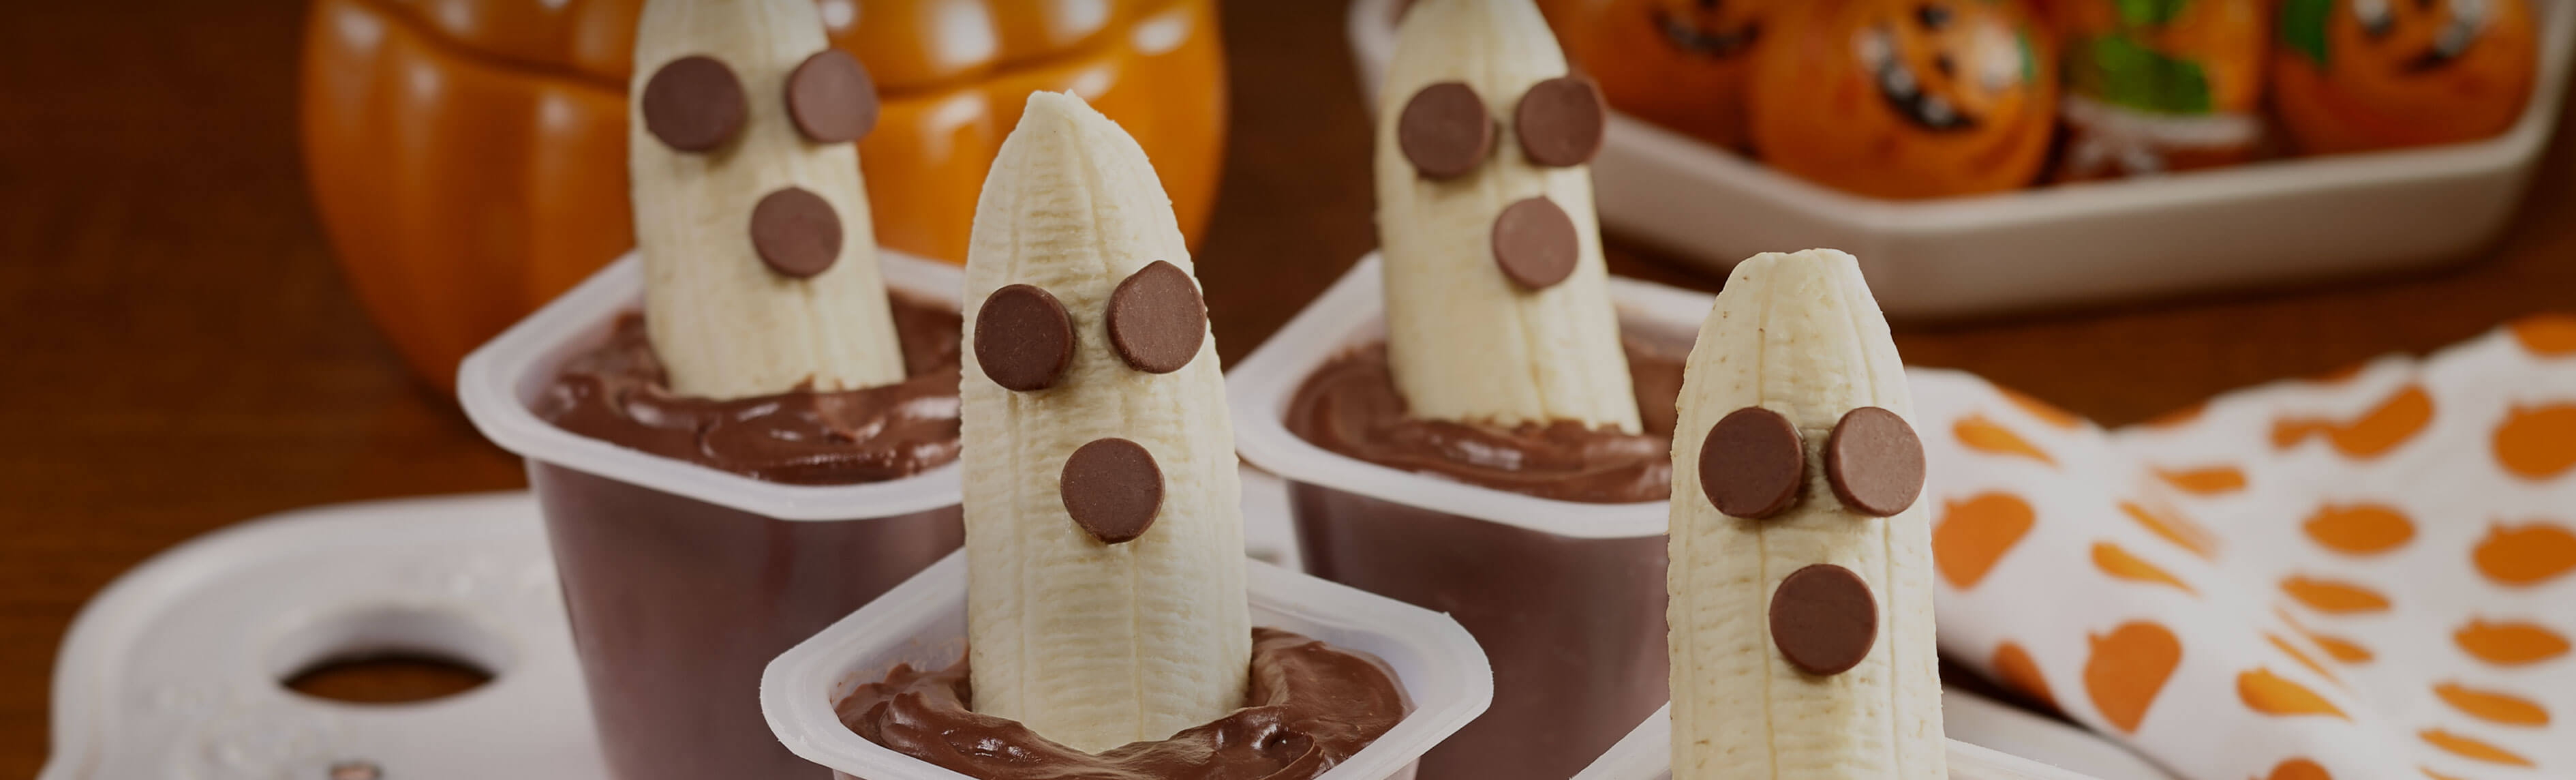 Boo-nana Chocolate Pudding Cups